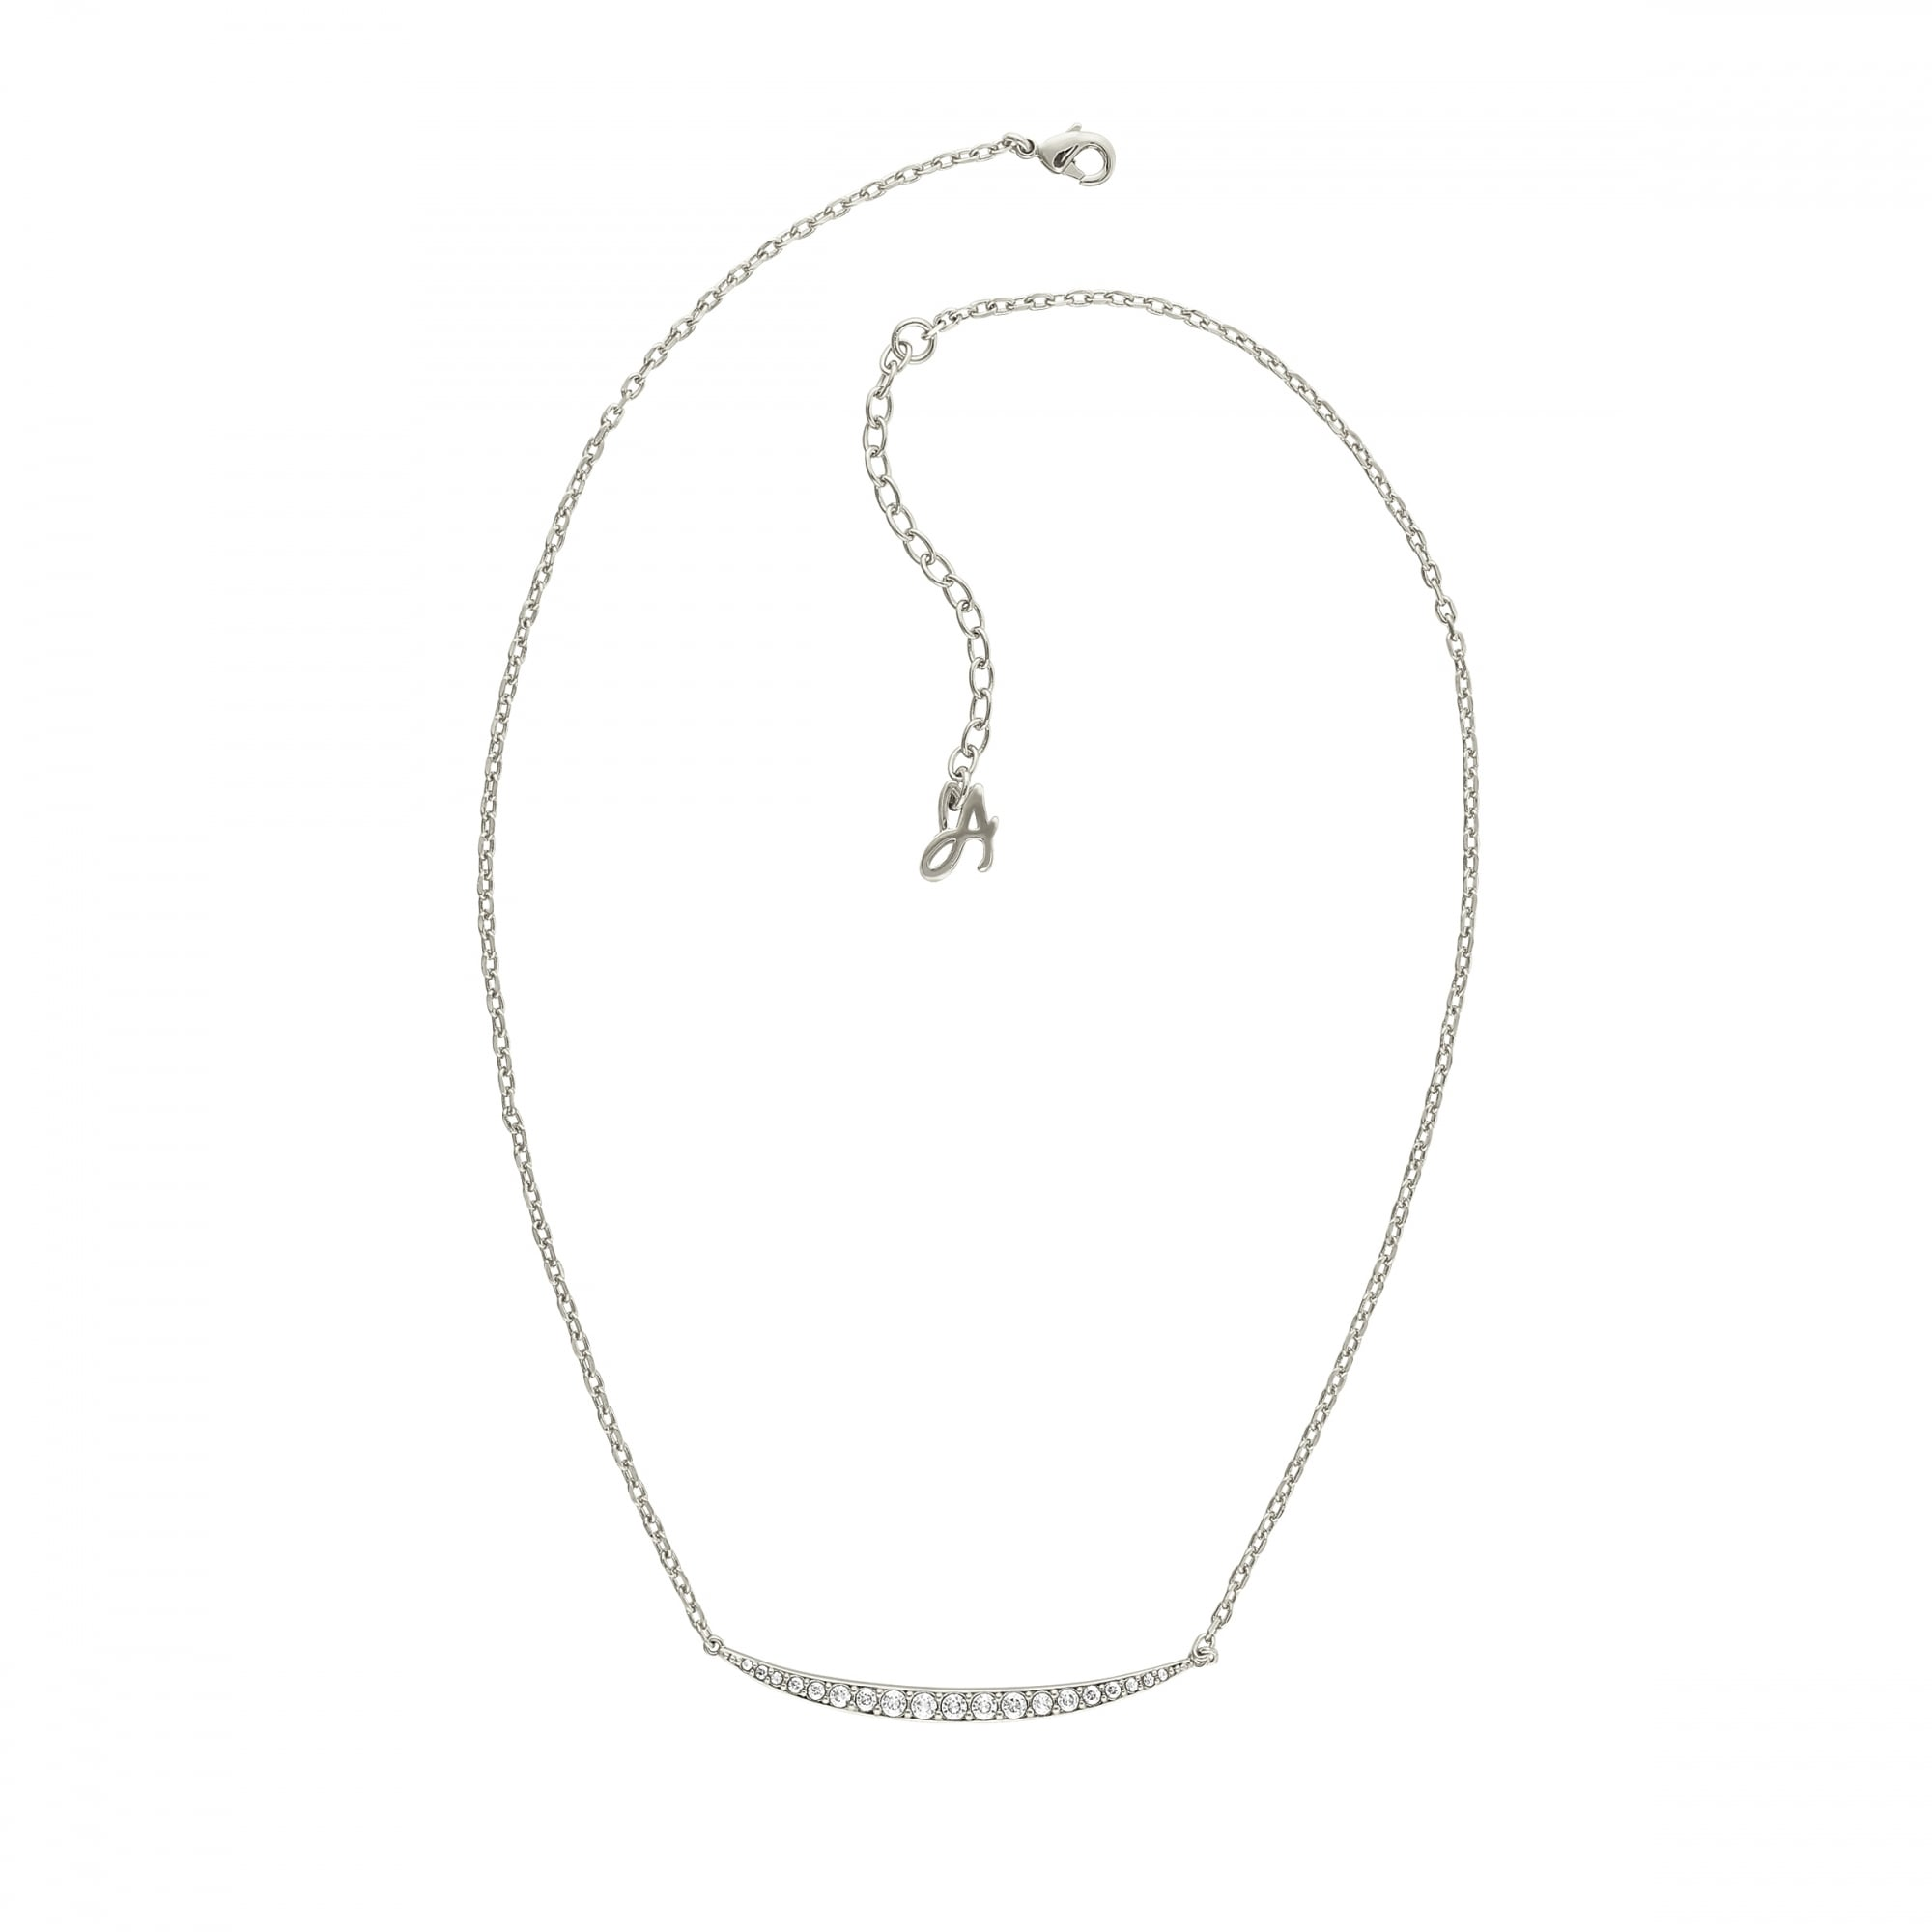 Adore Silver Curved Bar Necklace Created With Swarovski Crystals